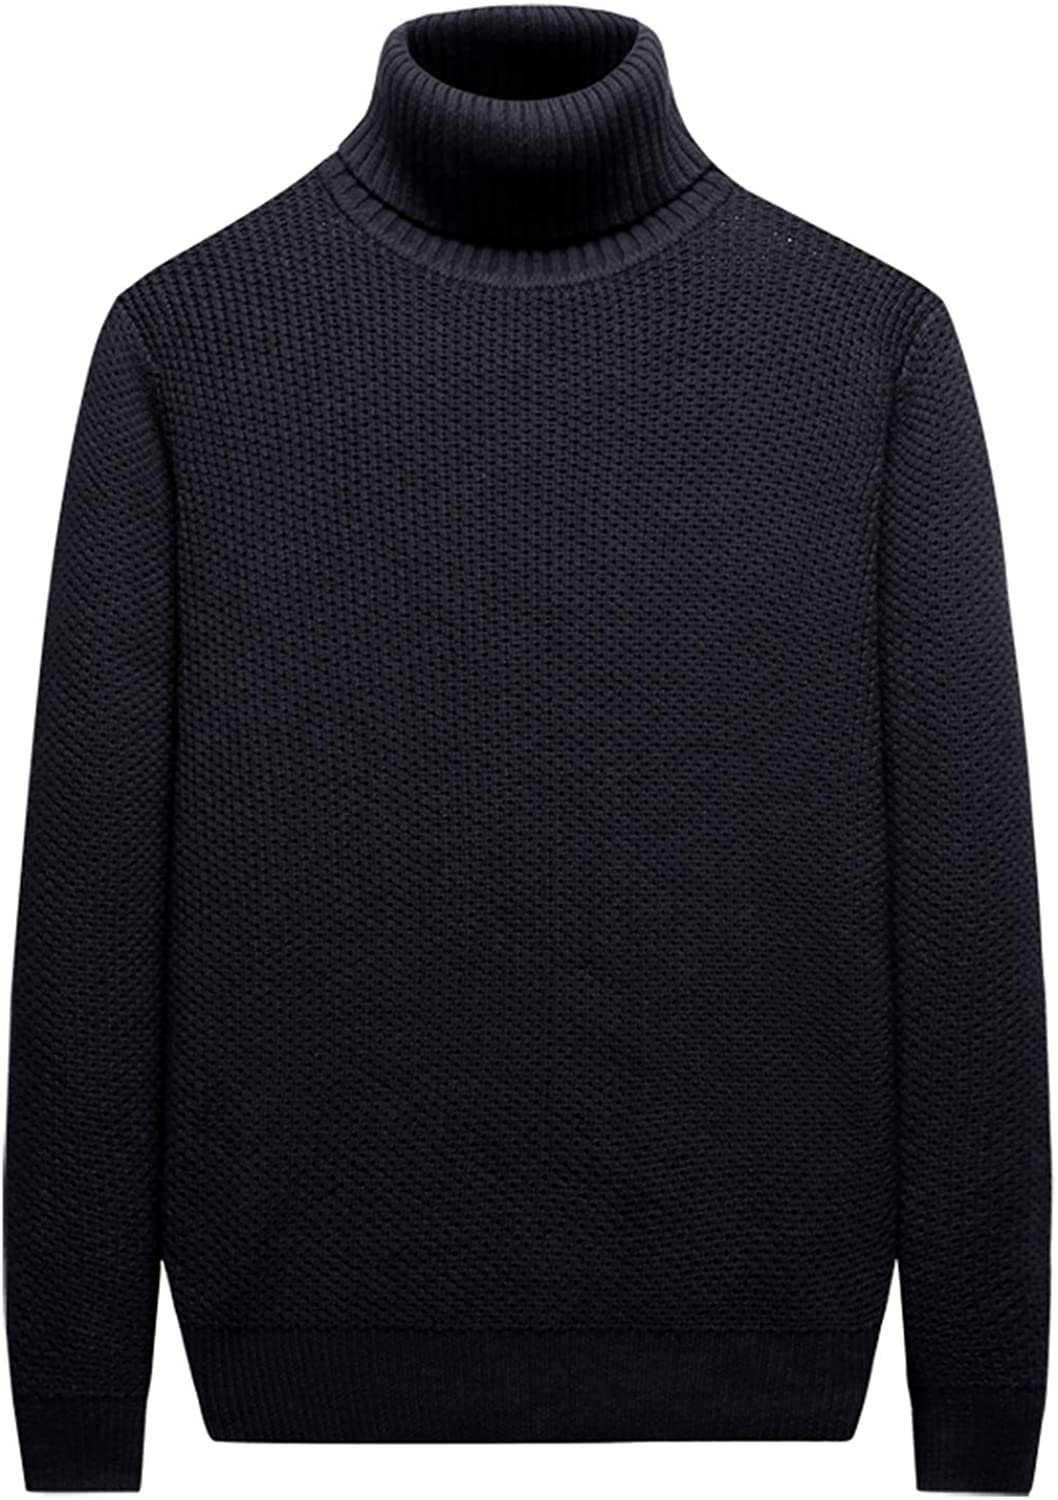 The small cat 2019 Cotton Birdseye Sweater Men Pullover Winter Warm Thick Turtle-Neck Knitwear Sweater